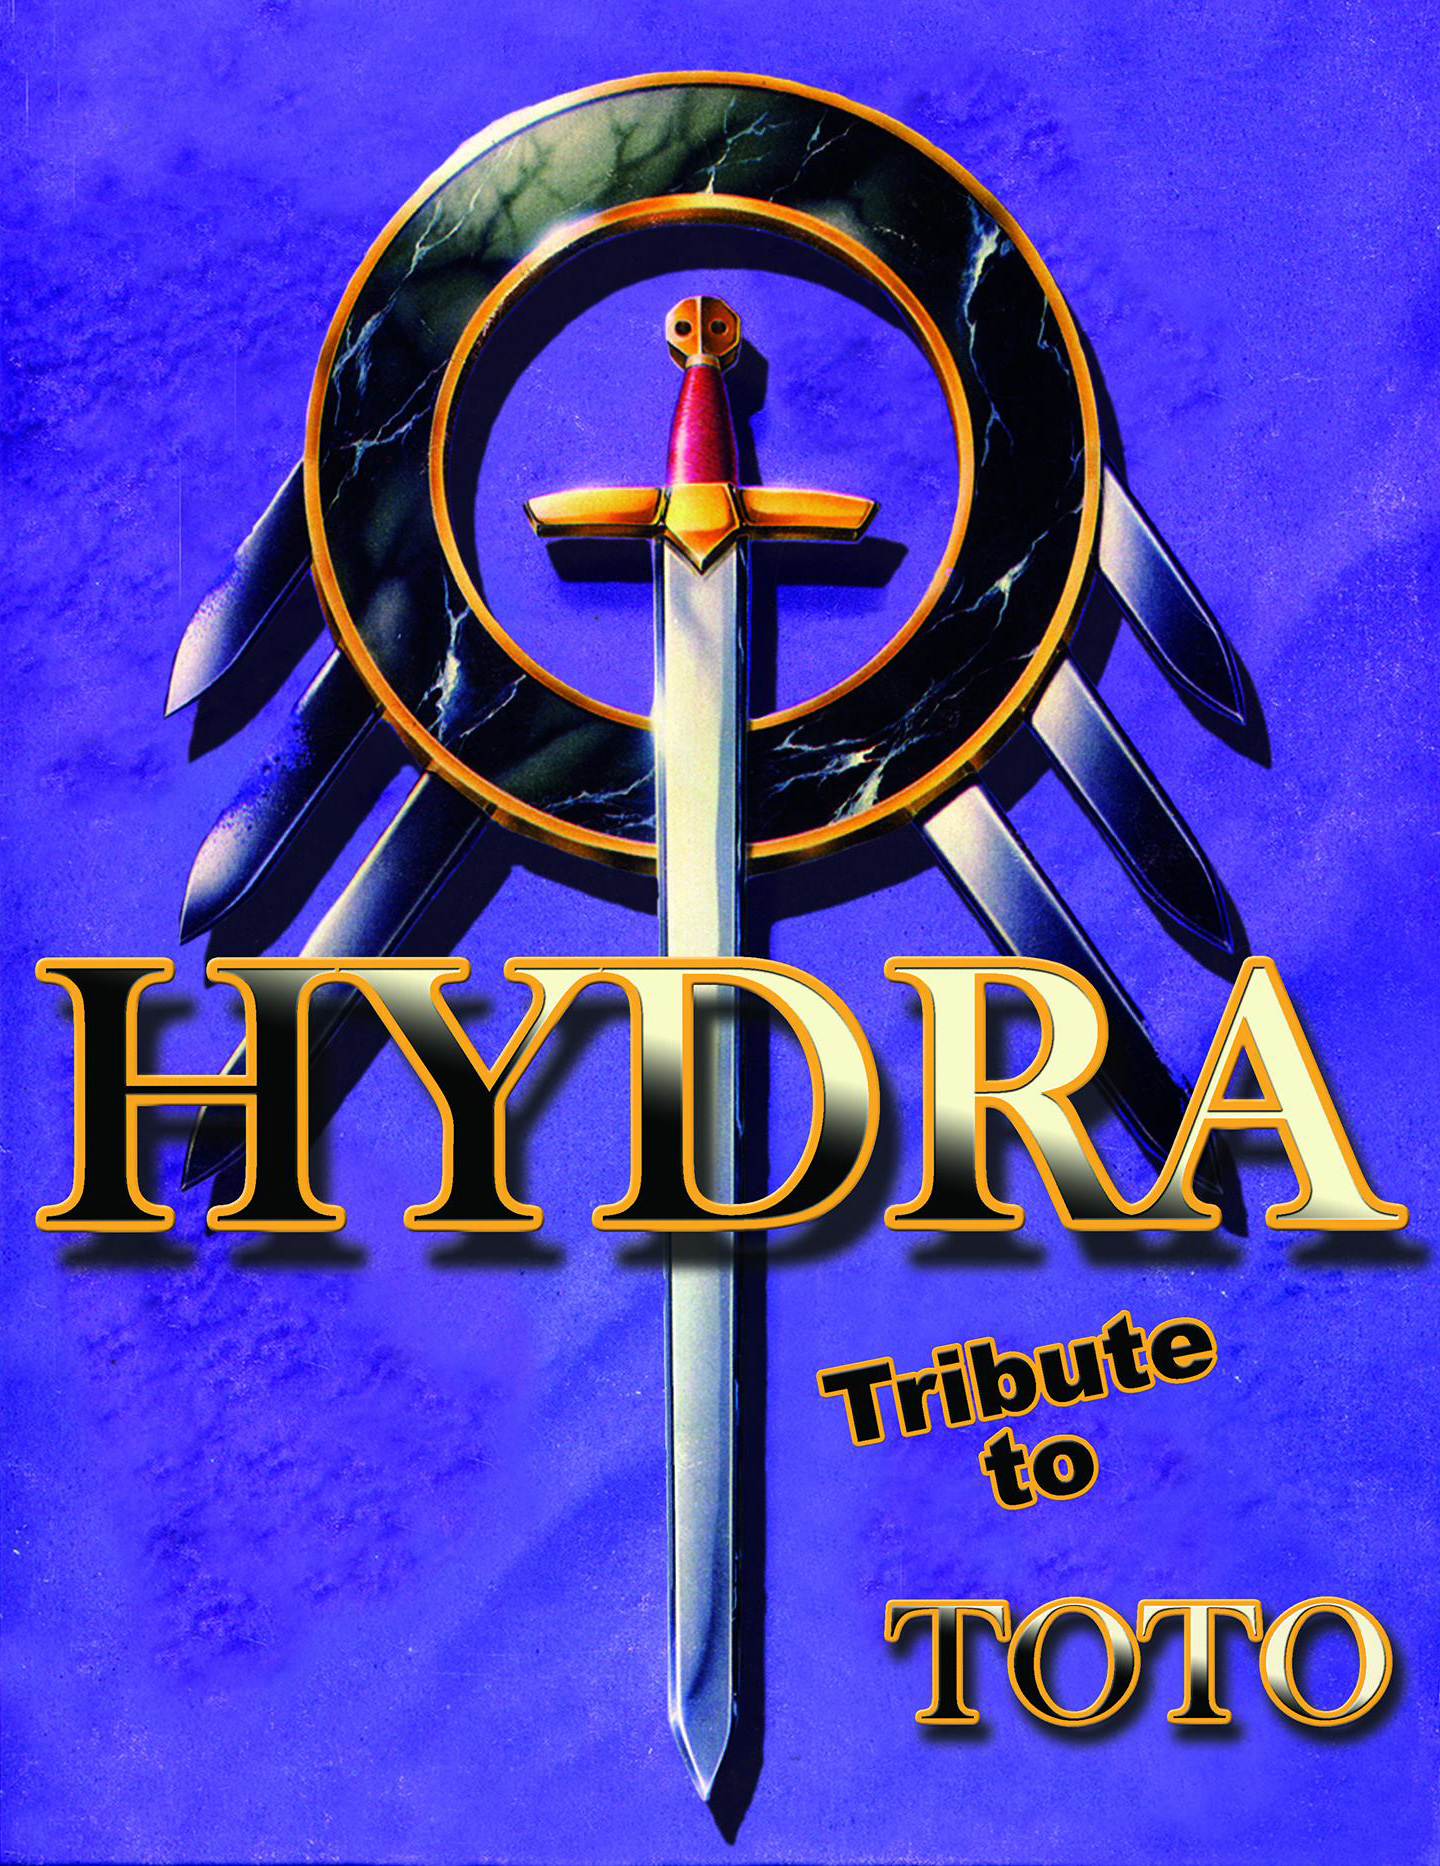 HYDRA - A Tribute To Toto